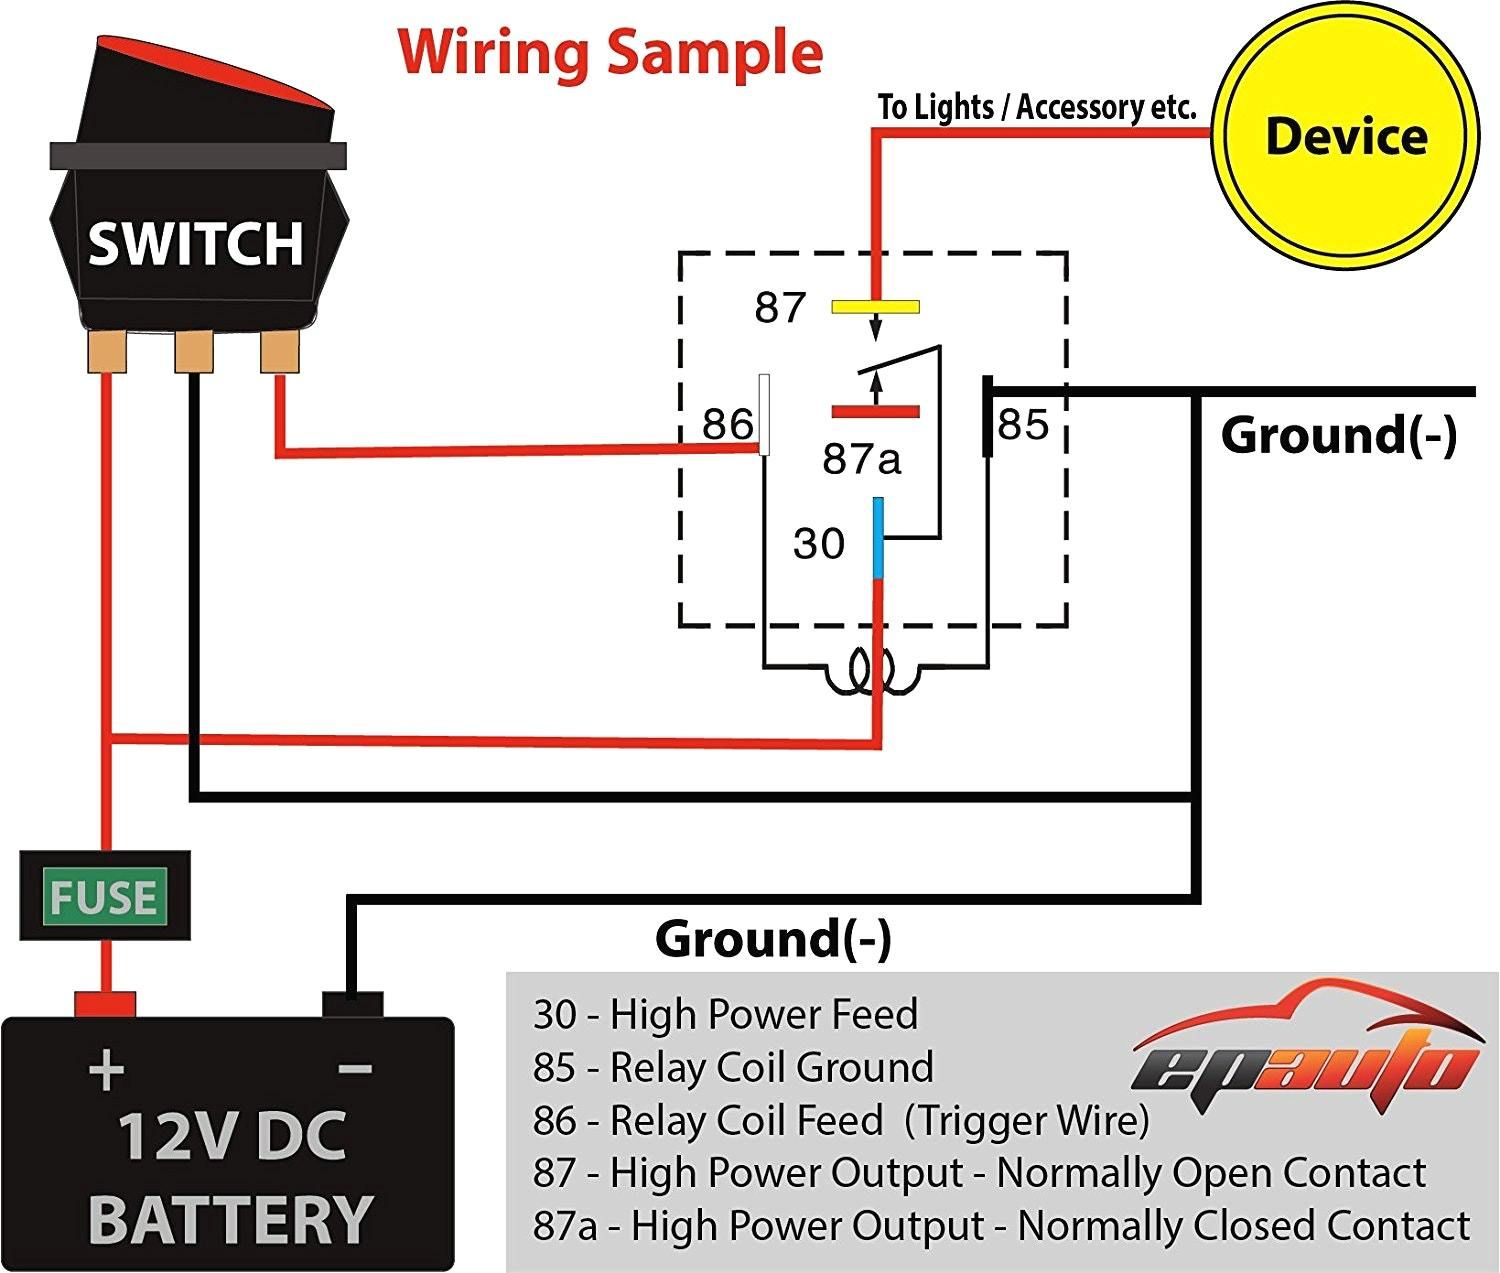 GL_4368] Toggle Switch Wiring Diagram As Well Wire Trailer Wiring DiagramEachi Expe Nful Mohammedshrine Librar Wiring 101